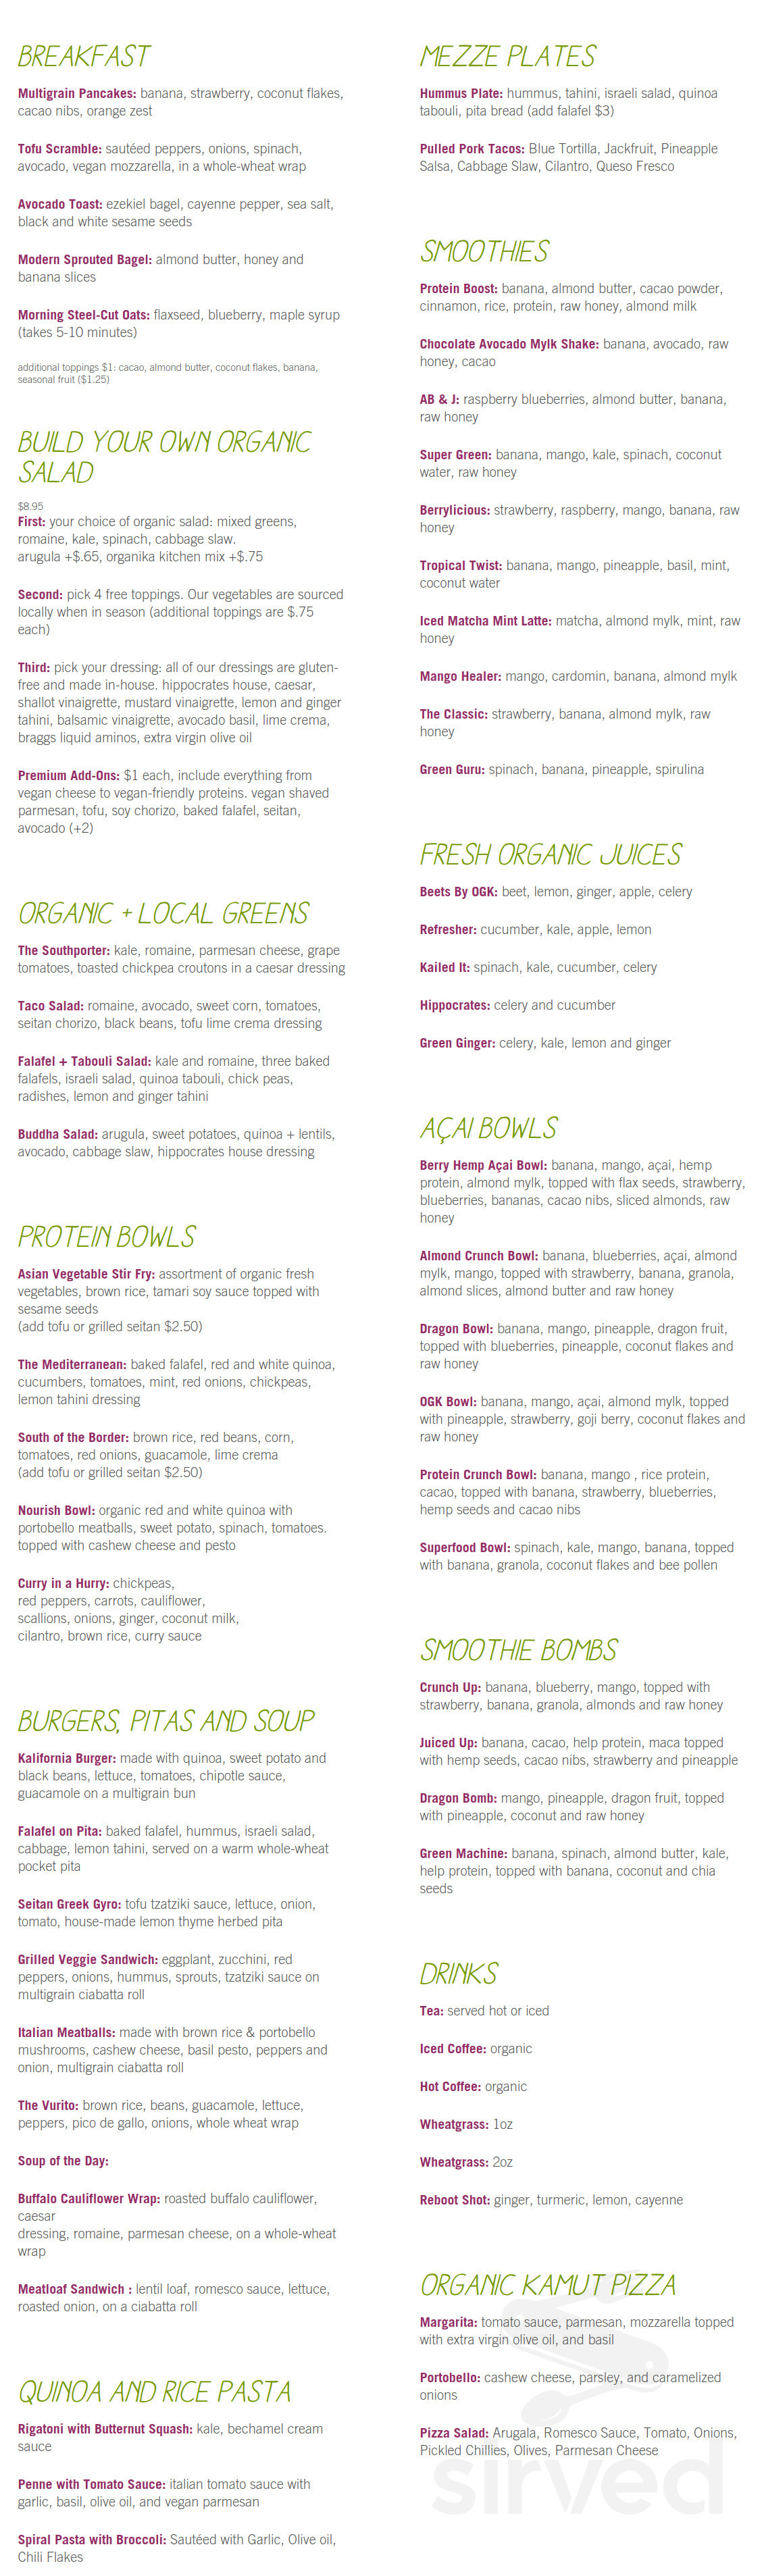 Greenology Menu In New Canaan Connecticut Usa